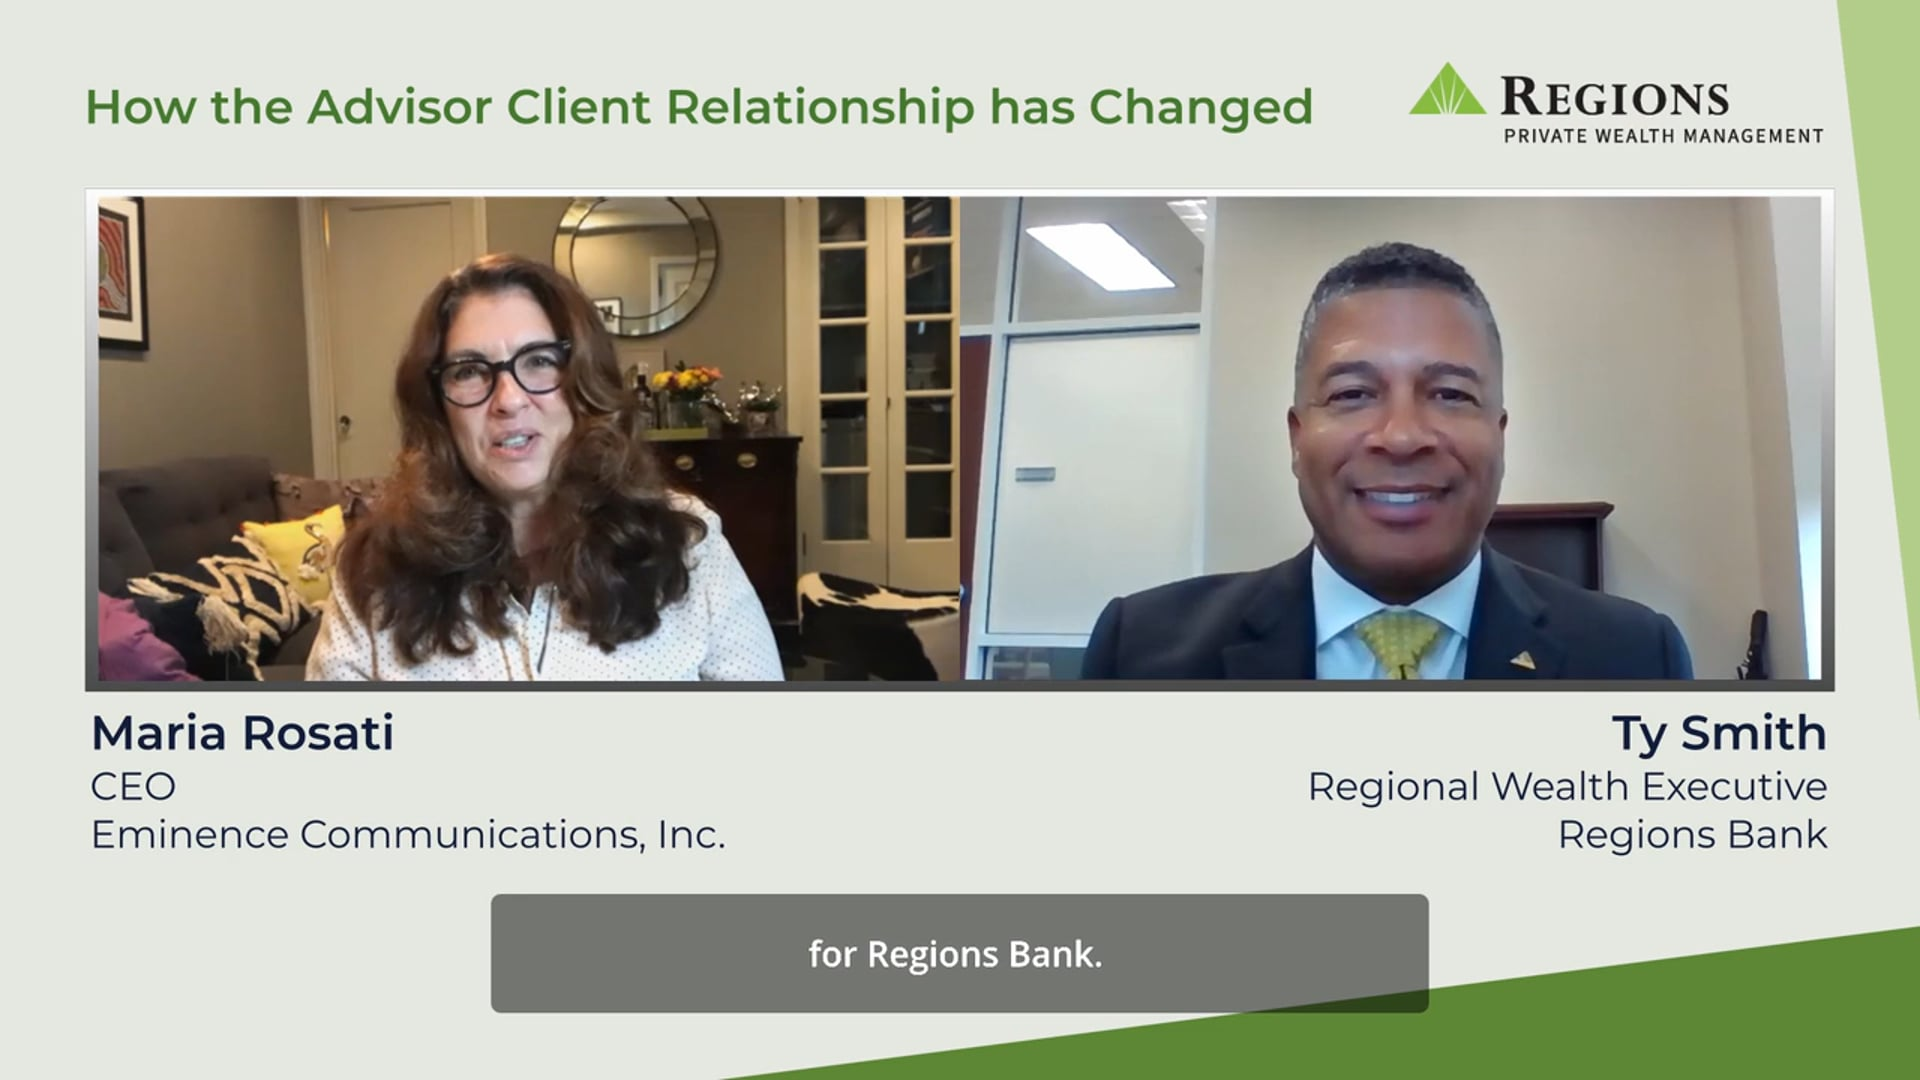 Regions - How the Advisor Client Relationship has Changed